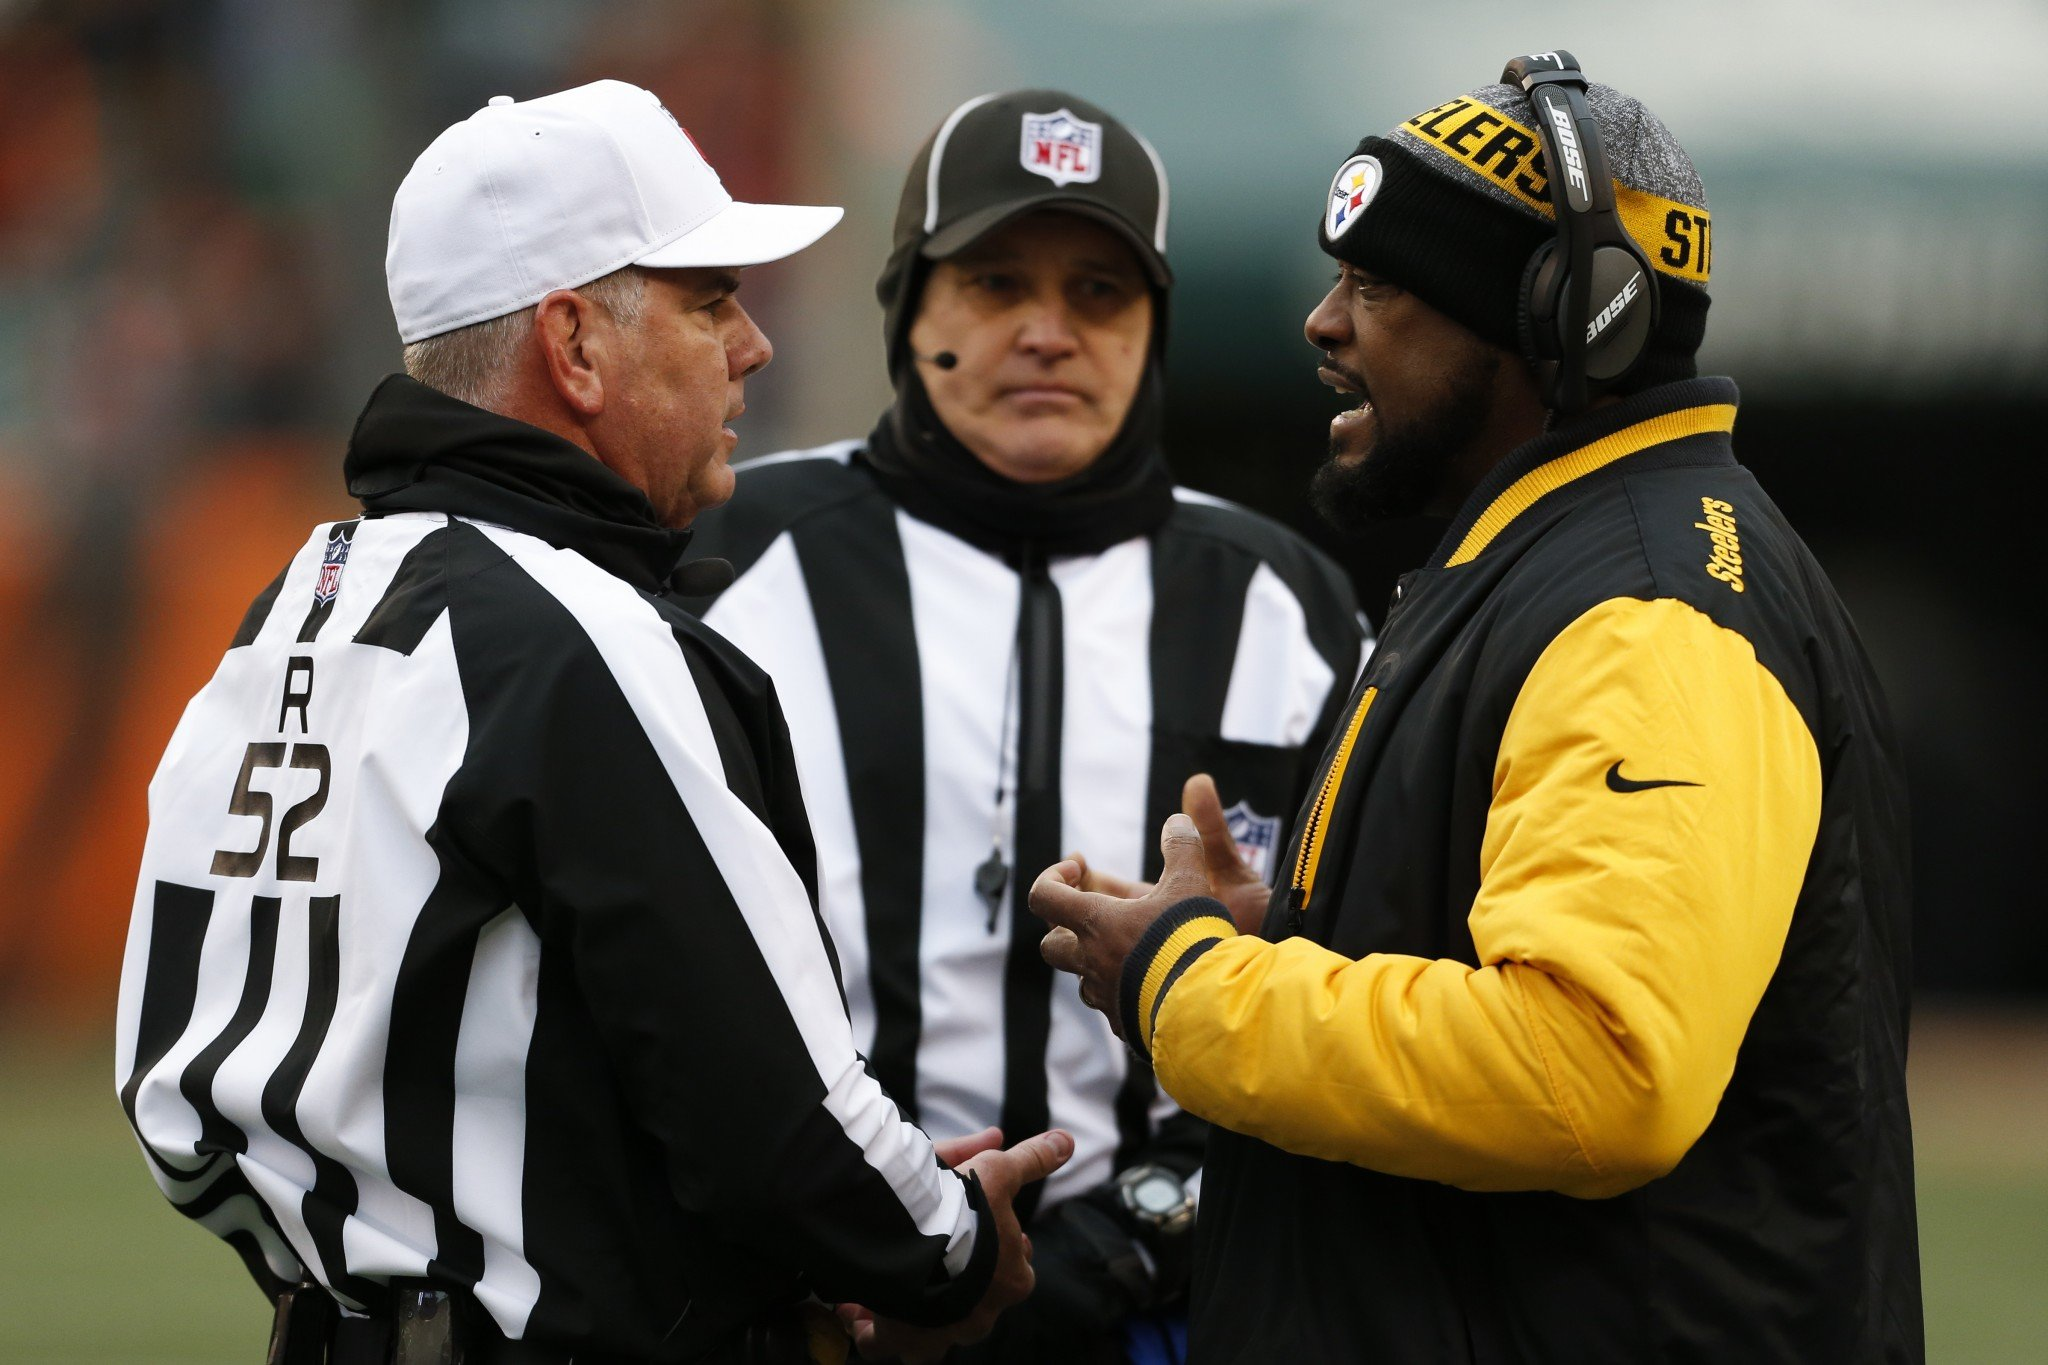 Pittsburgh Steelers head coach Mike Tomlin wants to know how a referee's whistle can freeze. (AP)